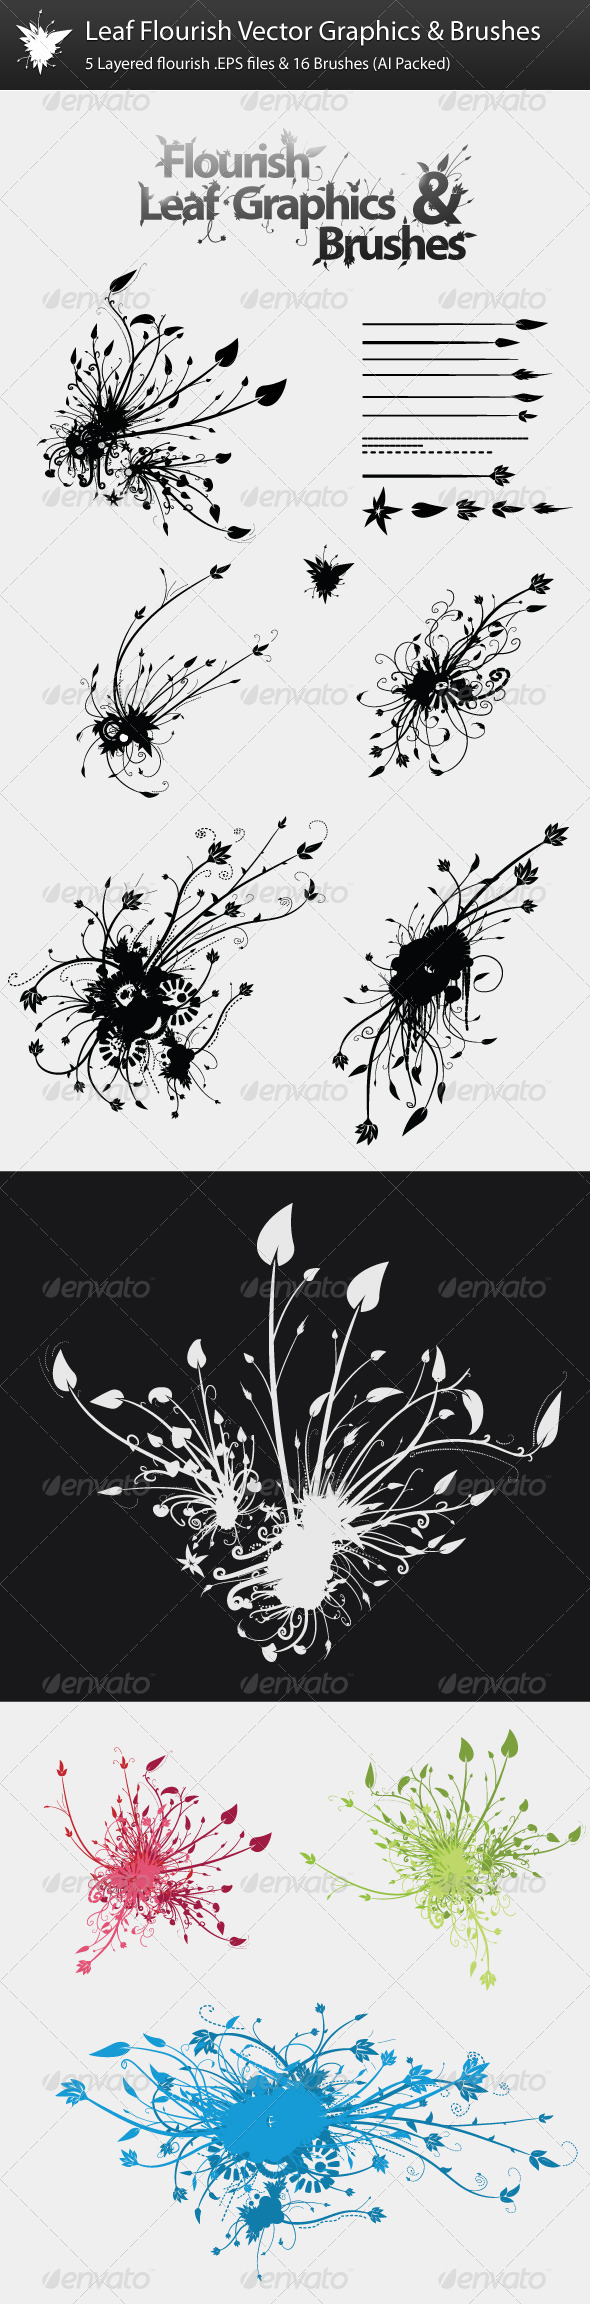 GraphicRiver Leaf Flourish Vector Graphics & Brushes 162072